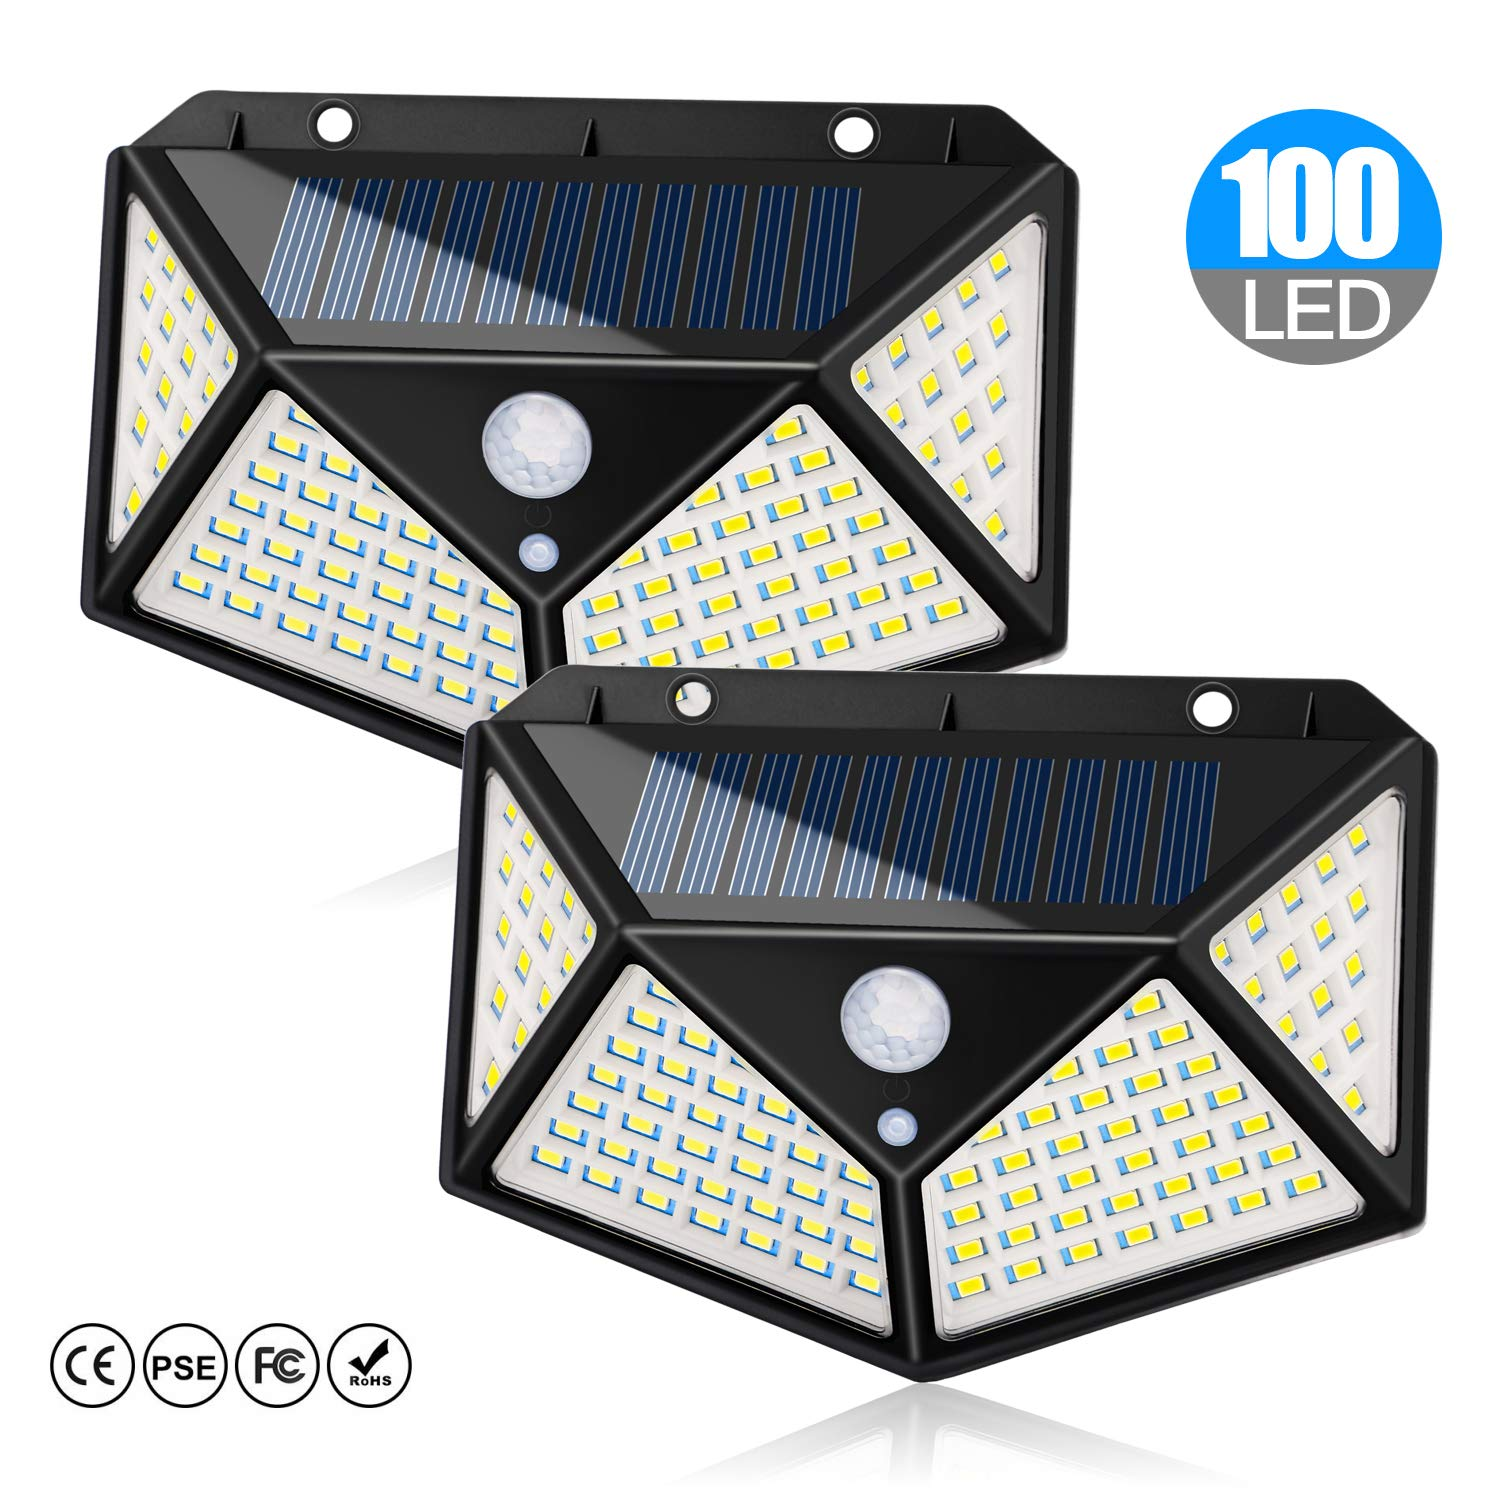 Solar Lights Outdoor 100 LEDs Solar Motion Sensor Light Outdoor 1000 Lumens Waterproof Security Wall Night Light with 3 Modes 270° Wide Angle for Garden, Patio Yard, Deck Garage, Fence, Porch - 2 Pack